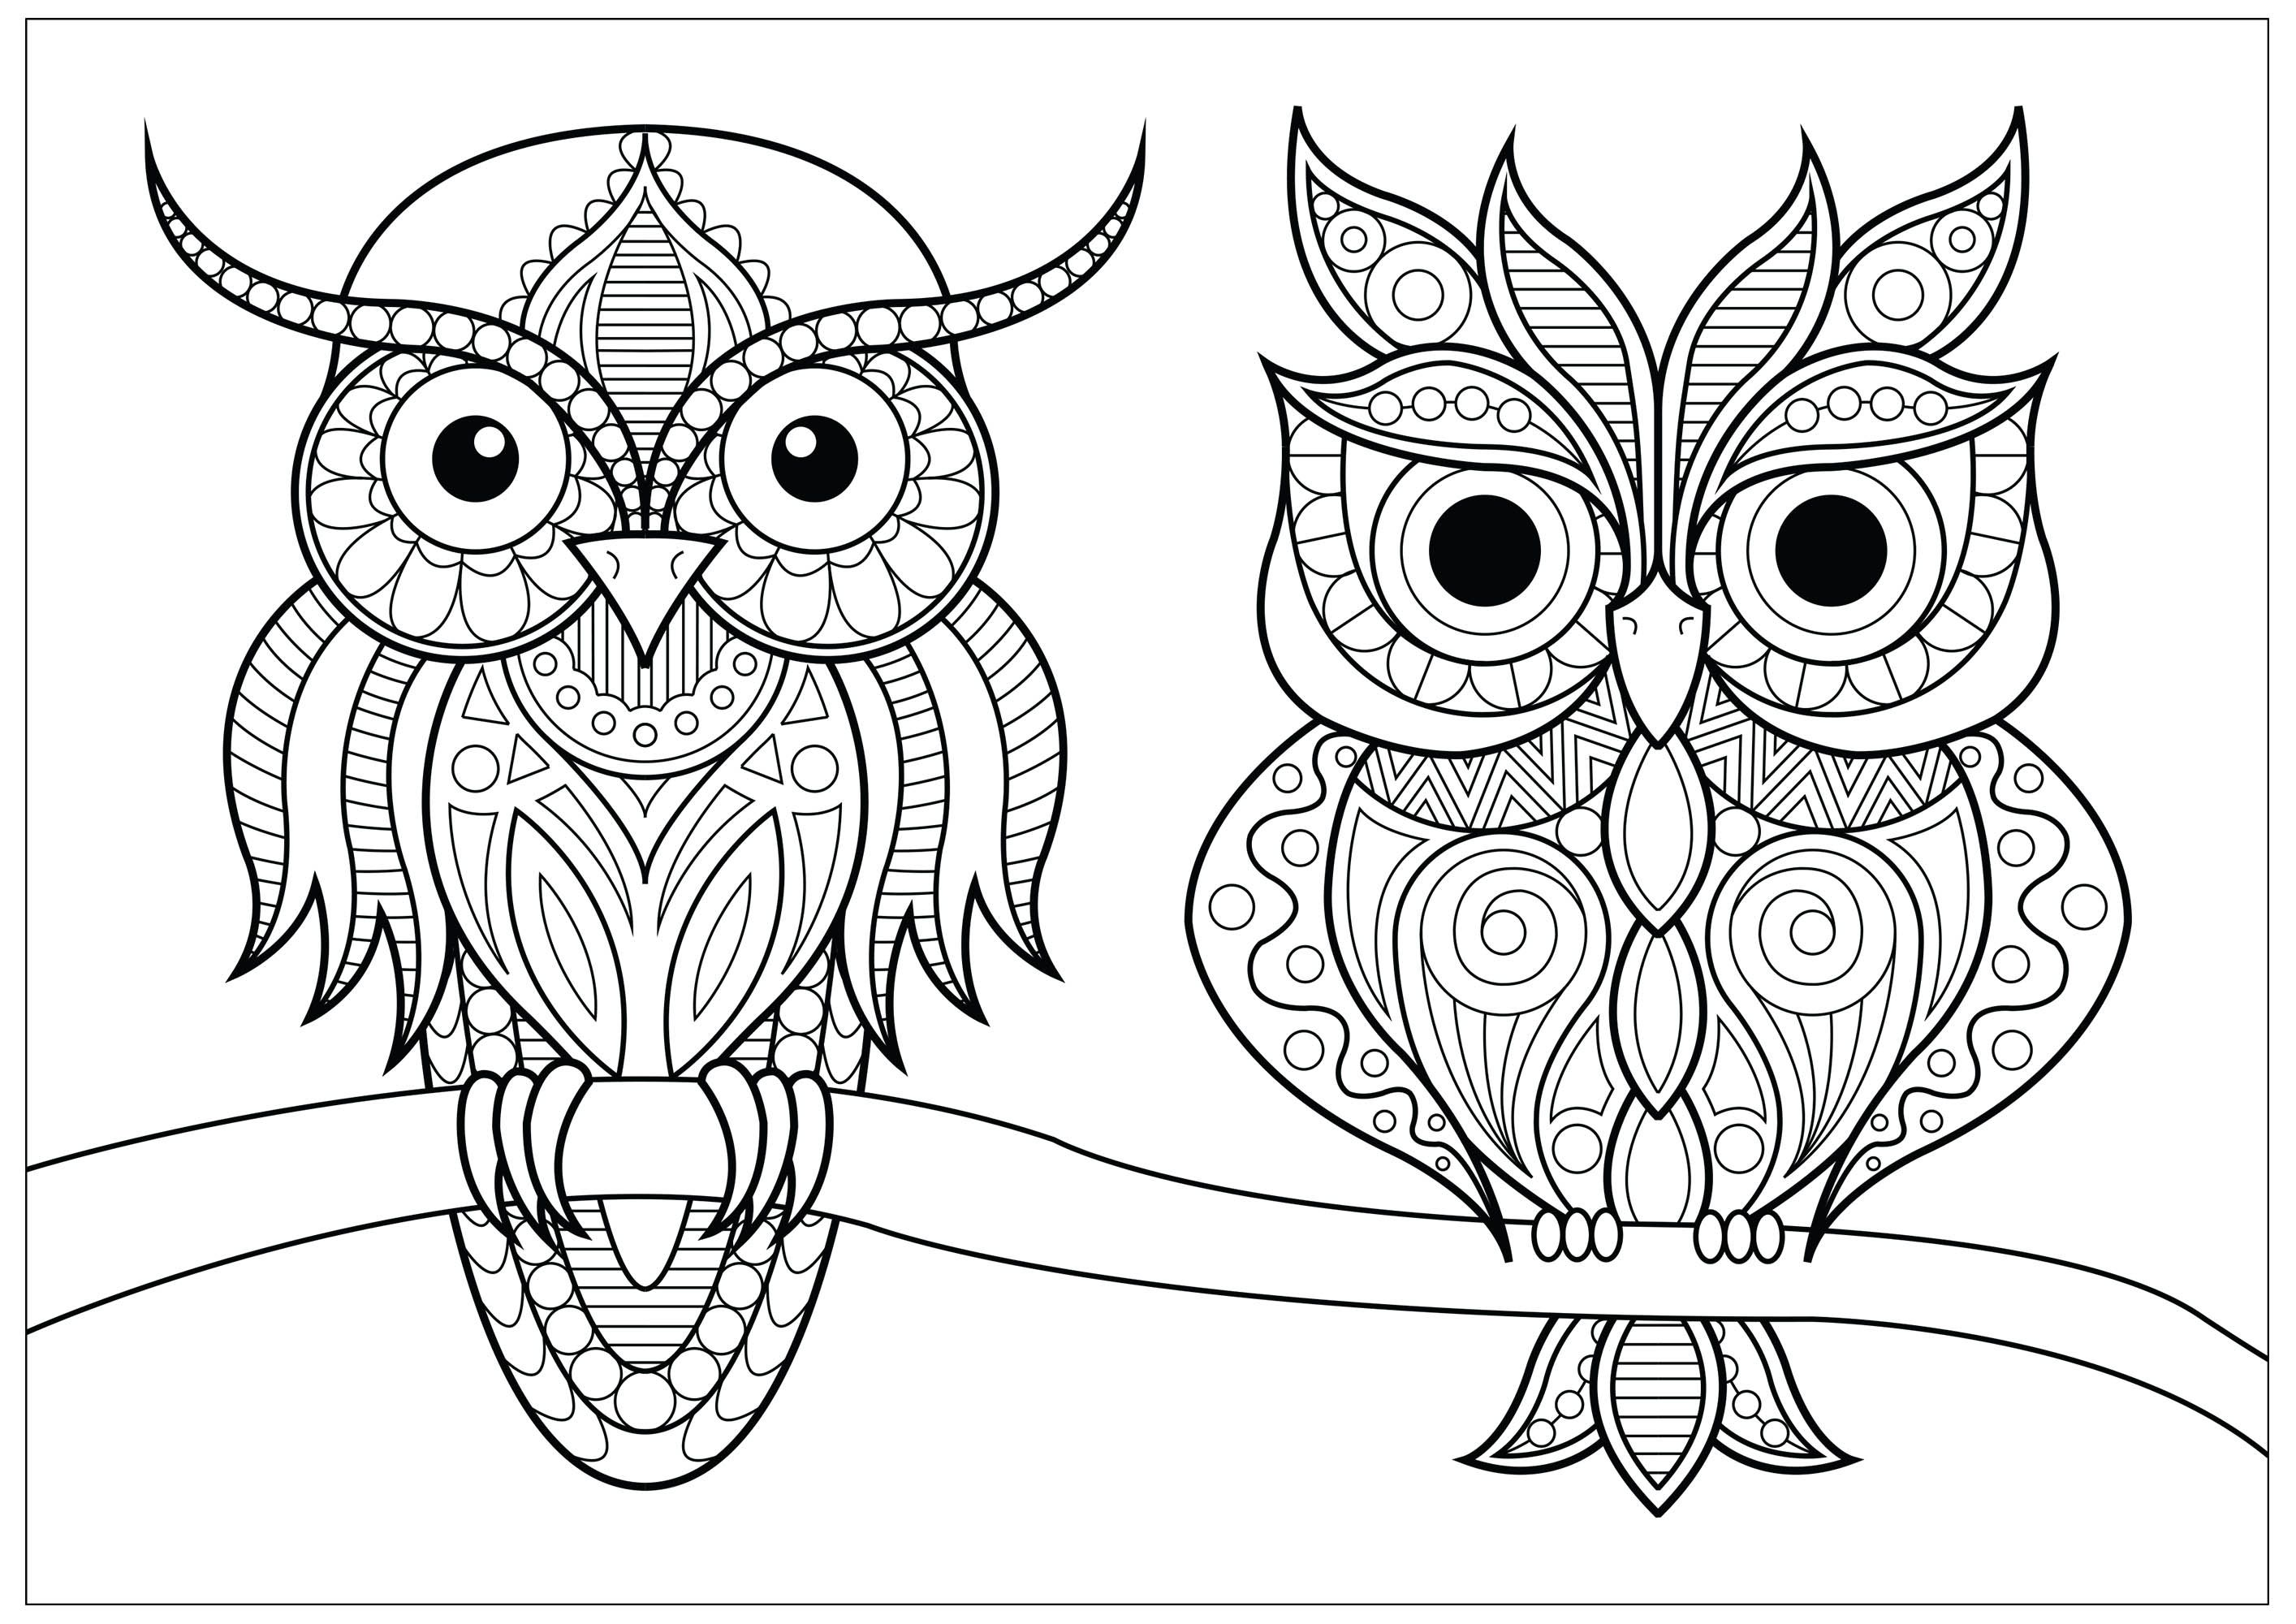 Pin by Helen Weber on Colour Me | Owl coloring pages ...